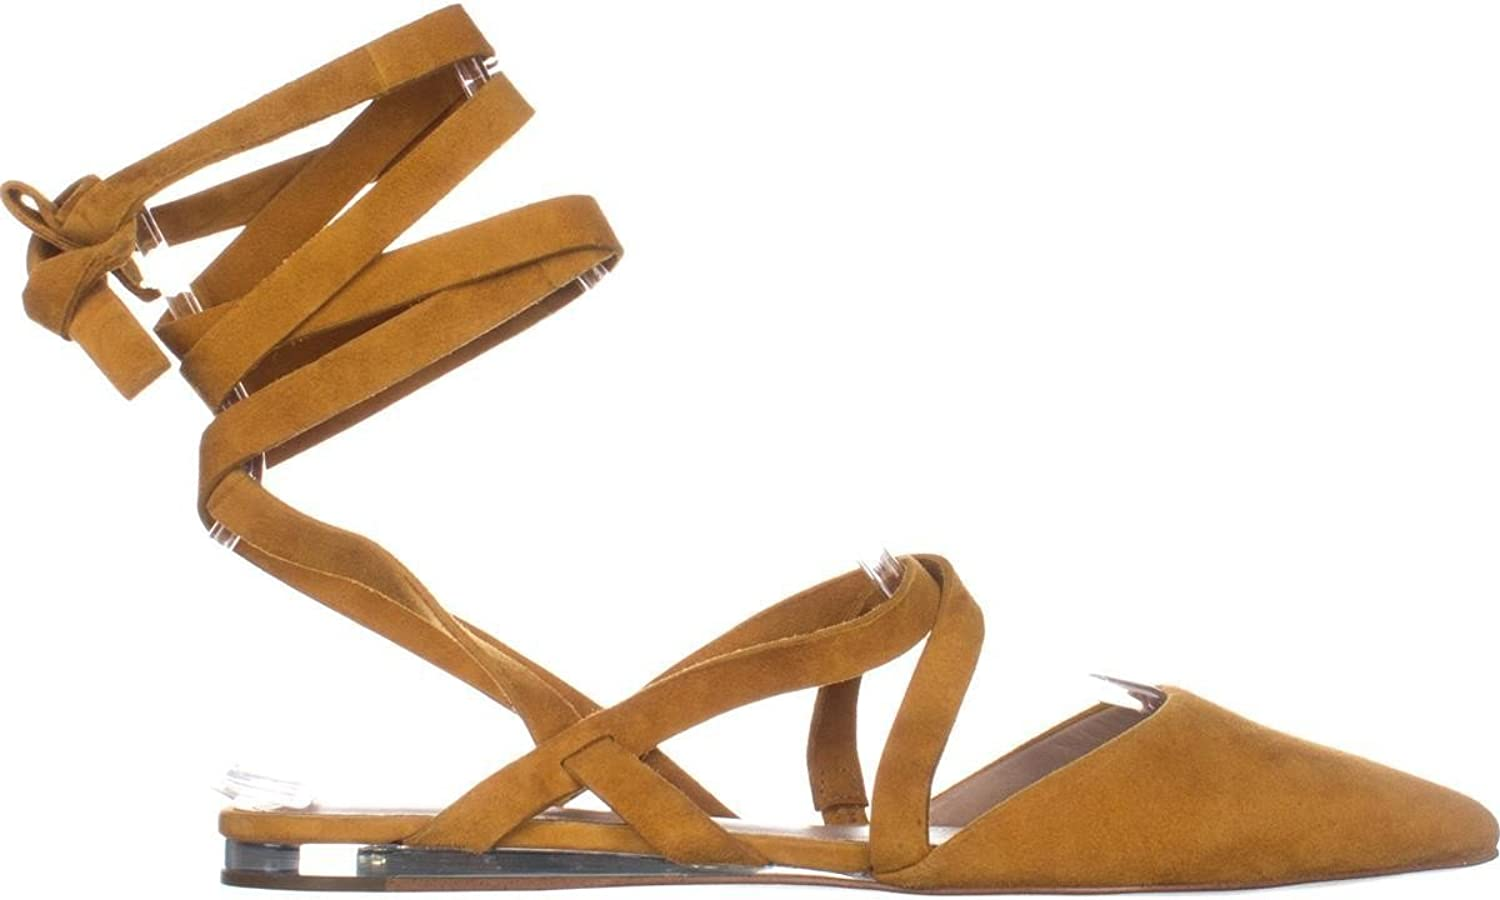 BCBGeneration Womens Noel Pointed Toe Special Occasion Gladiator Sandals